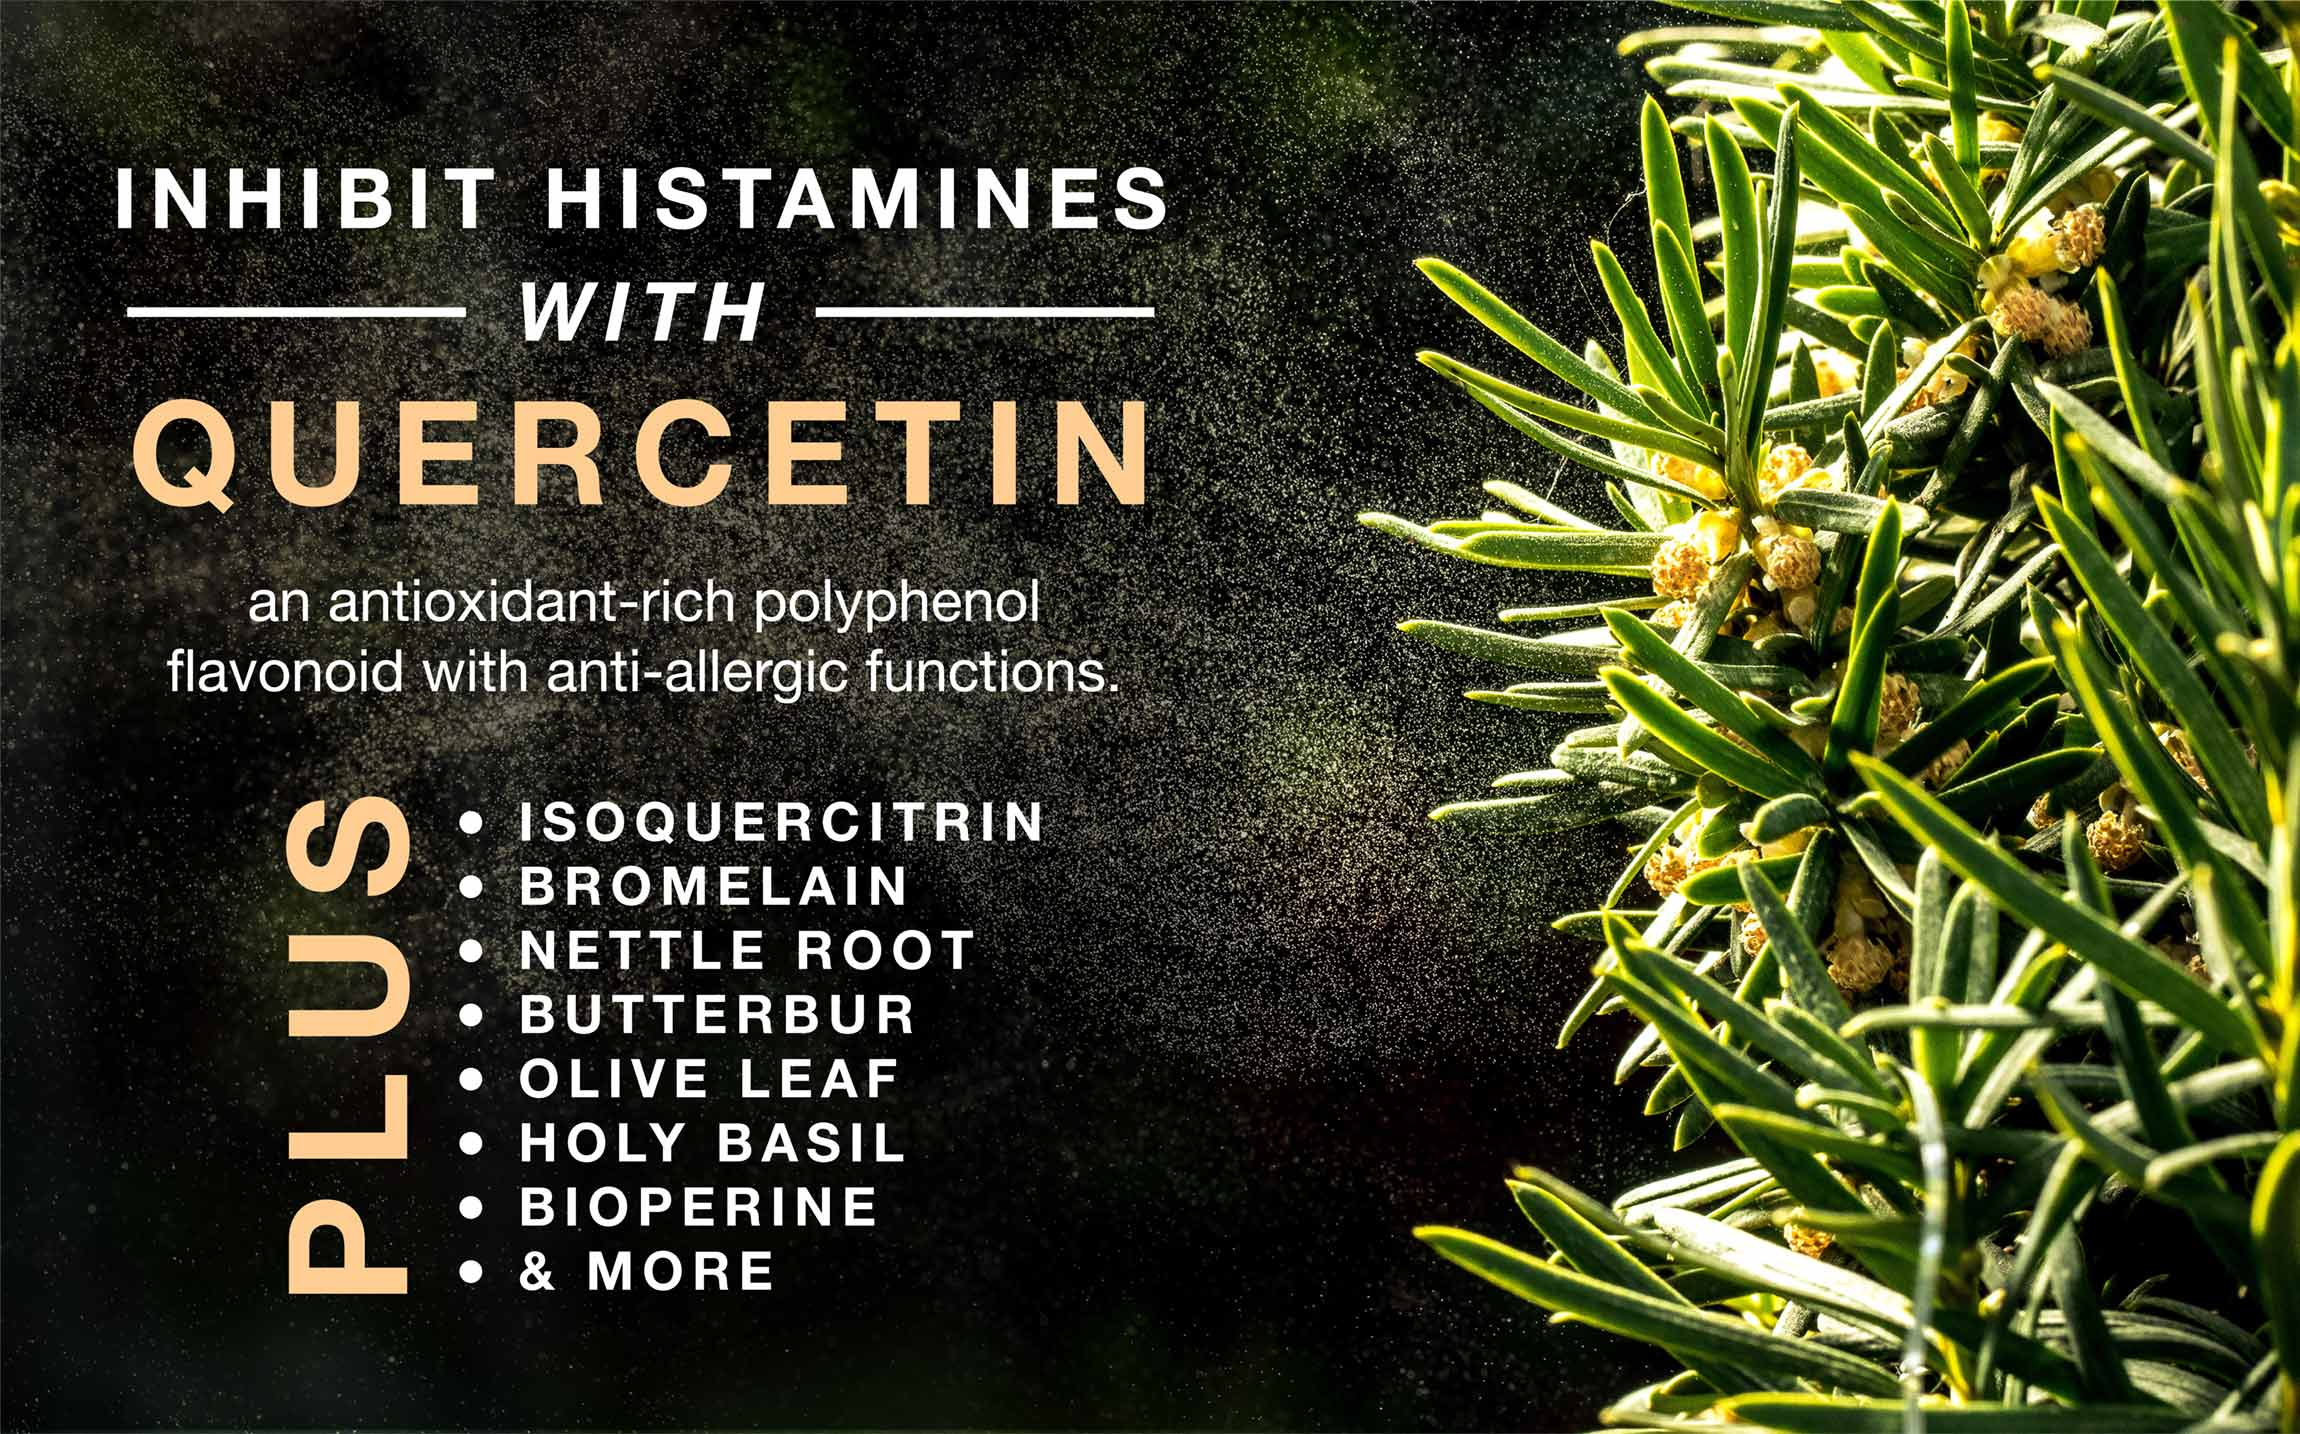 Inhibit histamines with Quercetin, an antioxidant-rich polyphenol flavonoid with anti-allergic functions.